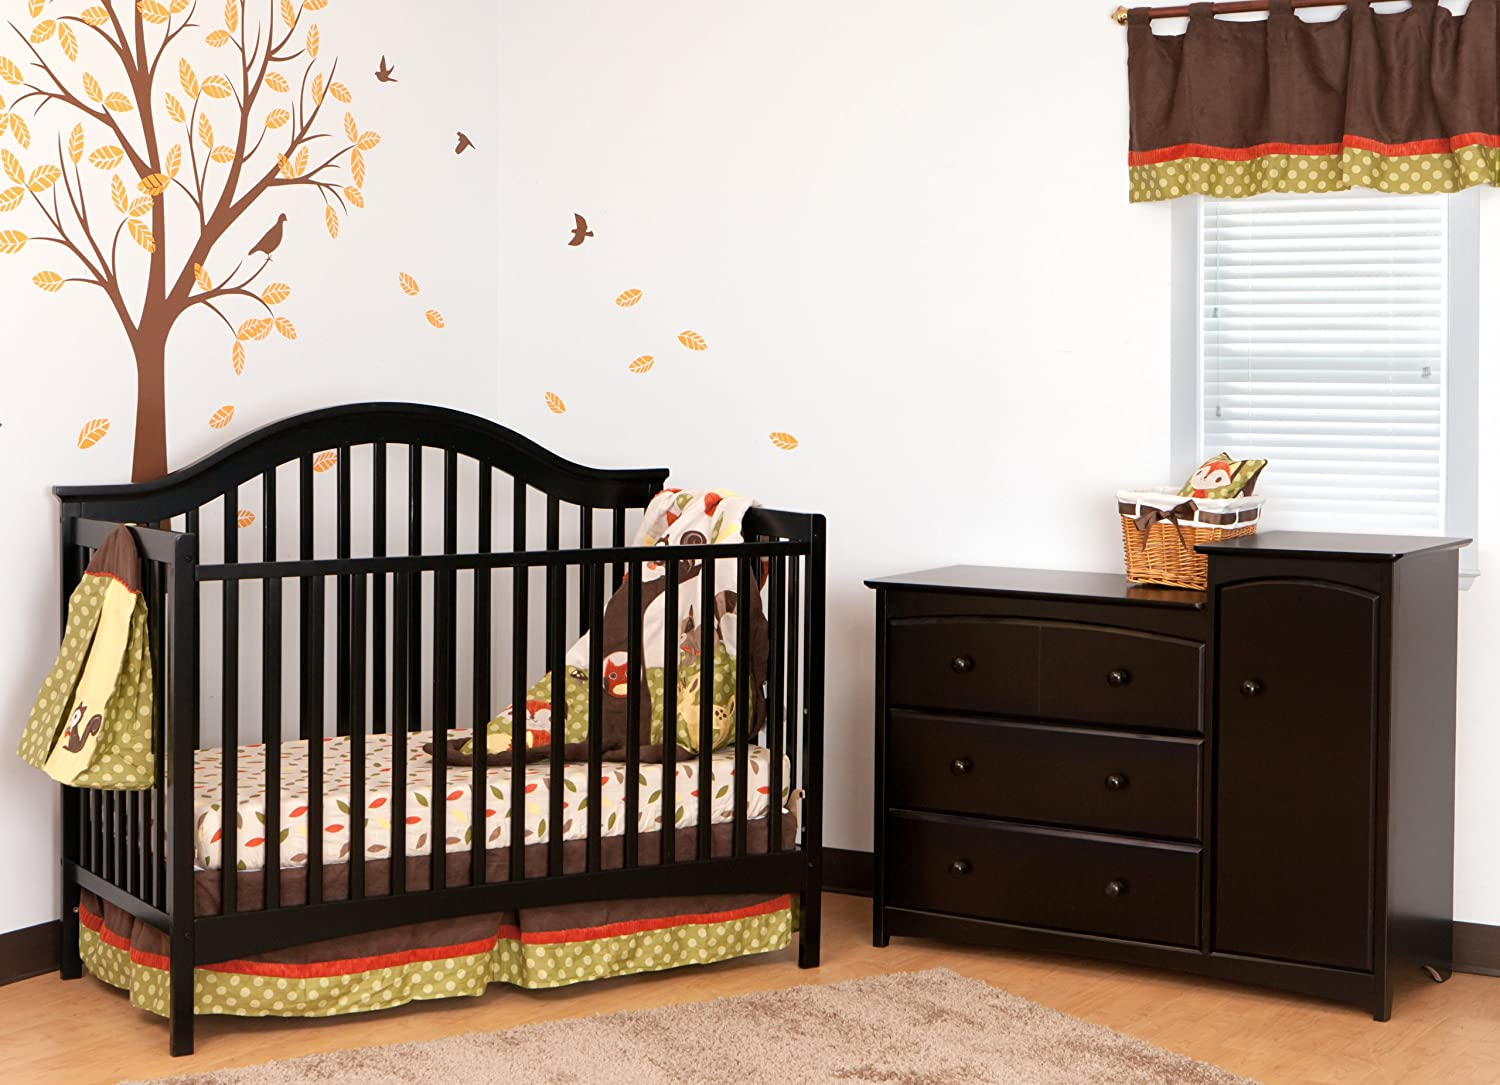 Baby cribs amazon - Amazoncom Stork Craft Ravena Fixed Side Convertible Crib Black By Baby Crib With Changing Table And Dresser Attached